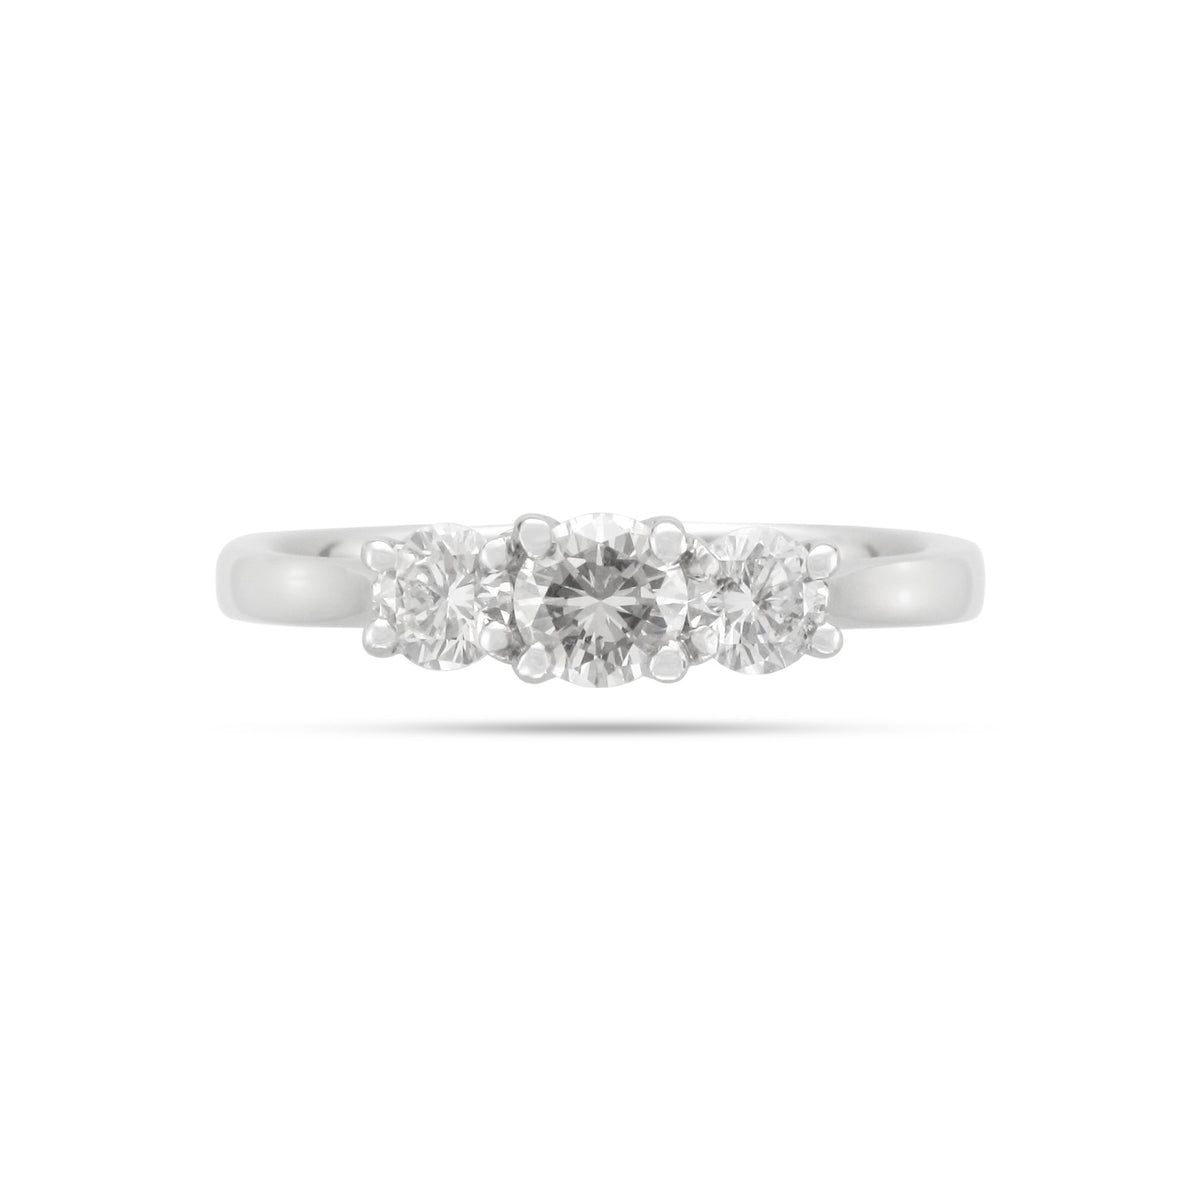 Vintage 18ct White Gold 3 Stone Diamond Ring